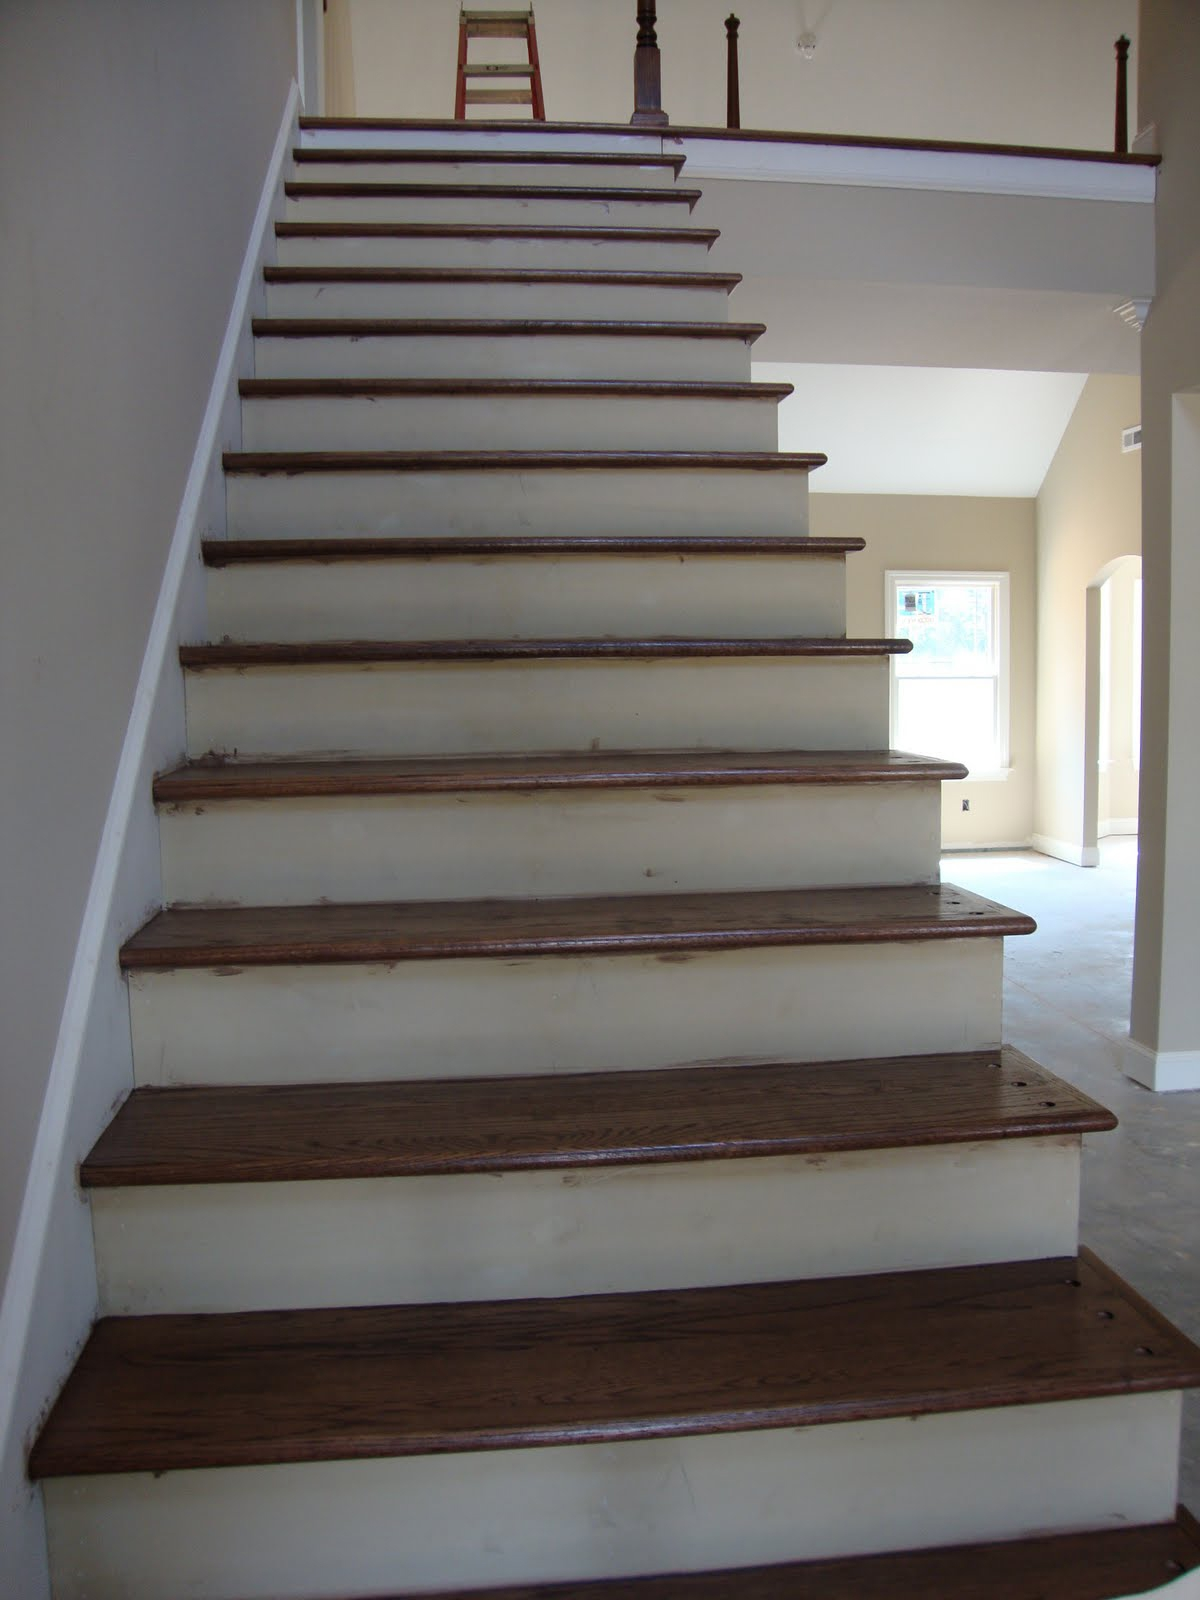 Stair Treads Wood Stair Design Ideas Pertaining To Contemporary Stair Treads (Image 14 of 15)